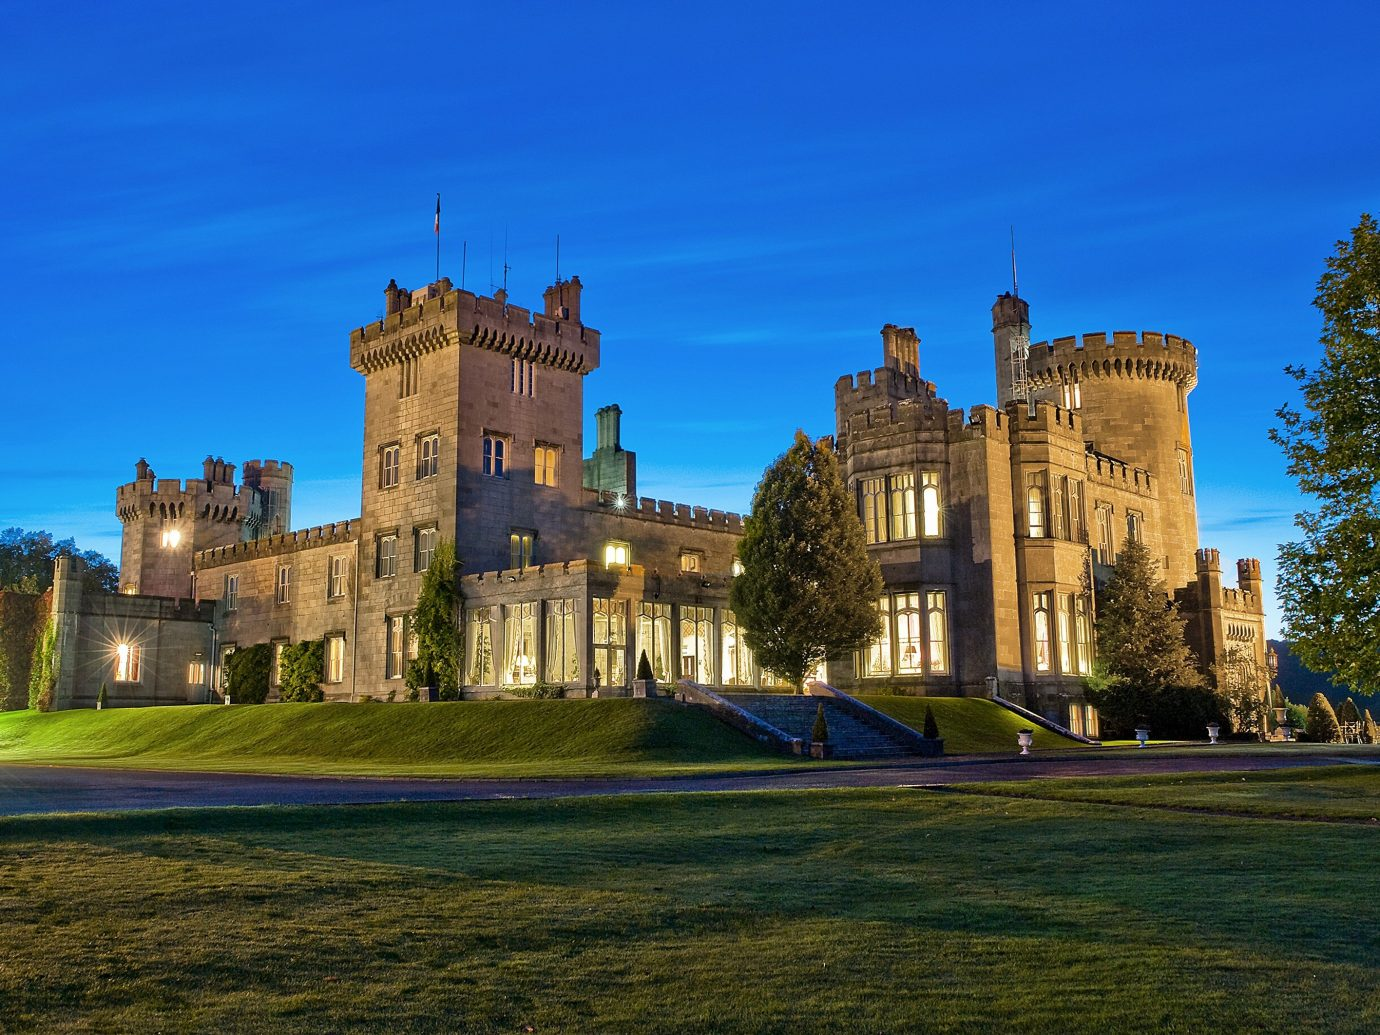 Hotels grass sky outdoor building castle landmark château stately home estate palace